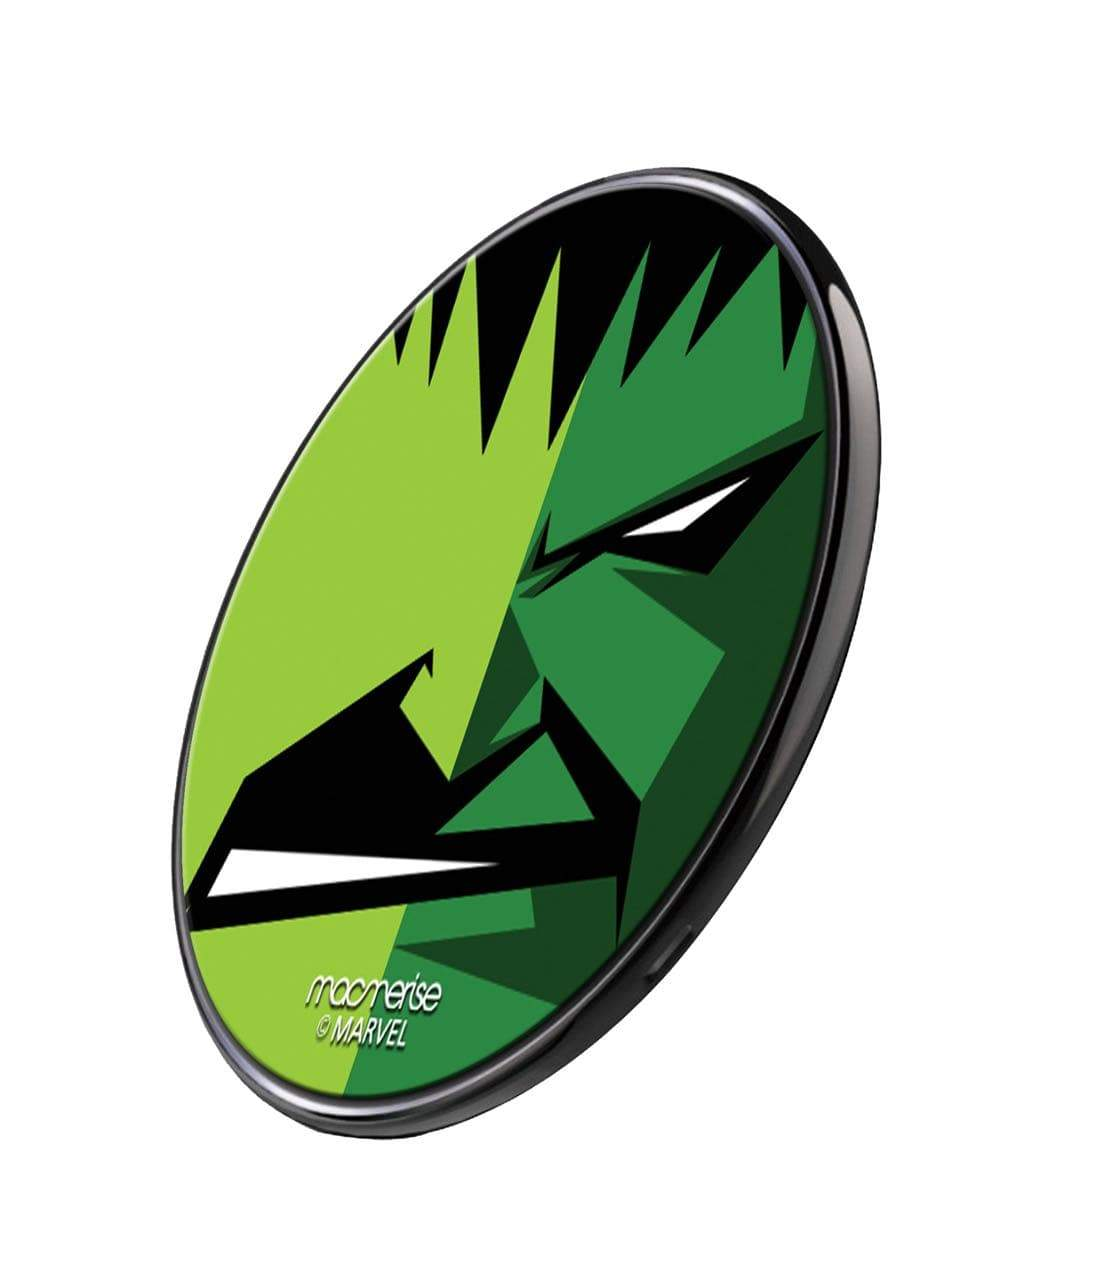 Face Focus Hulk Wireless Charger by Macmerise -Macmerise - India - www.superherotoystore.com